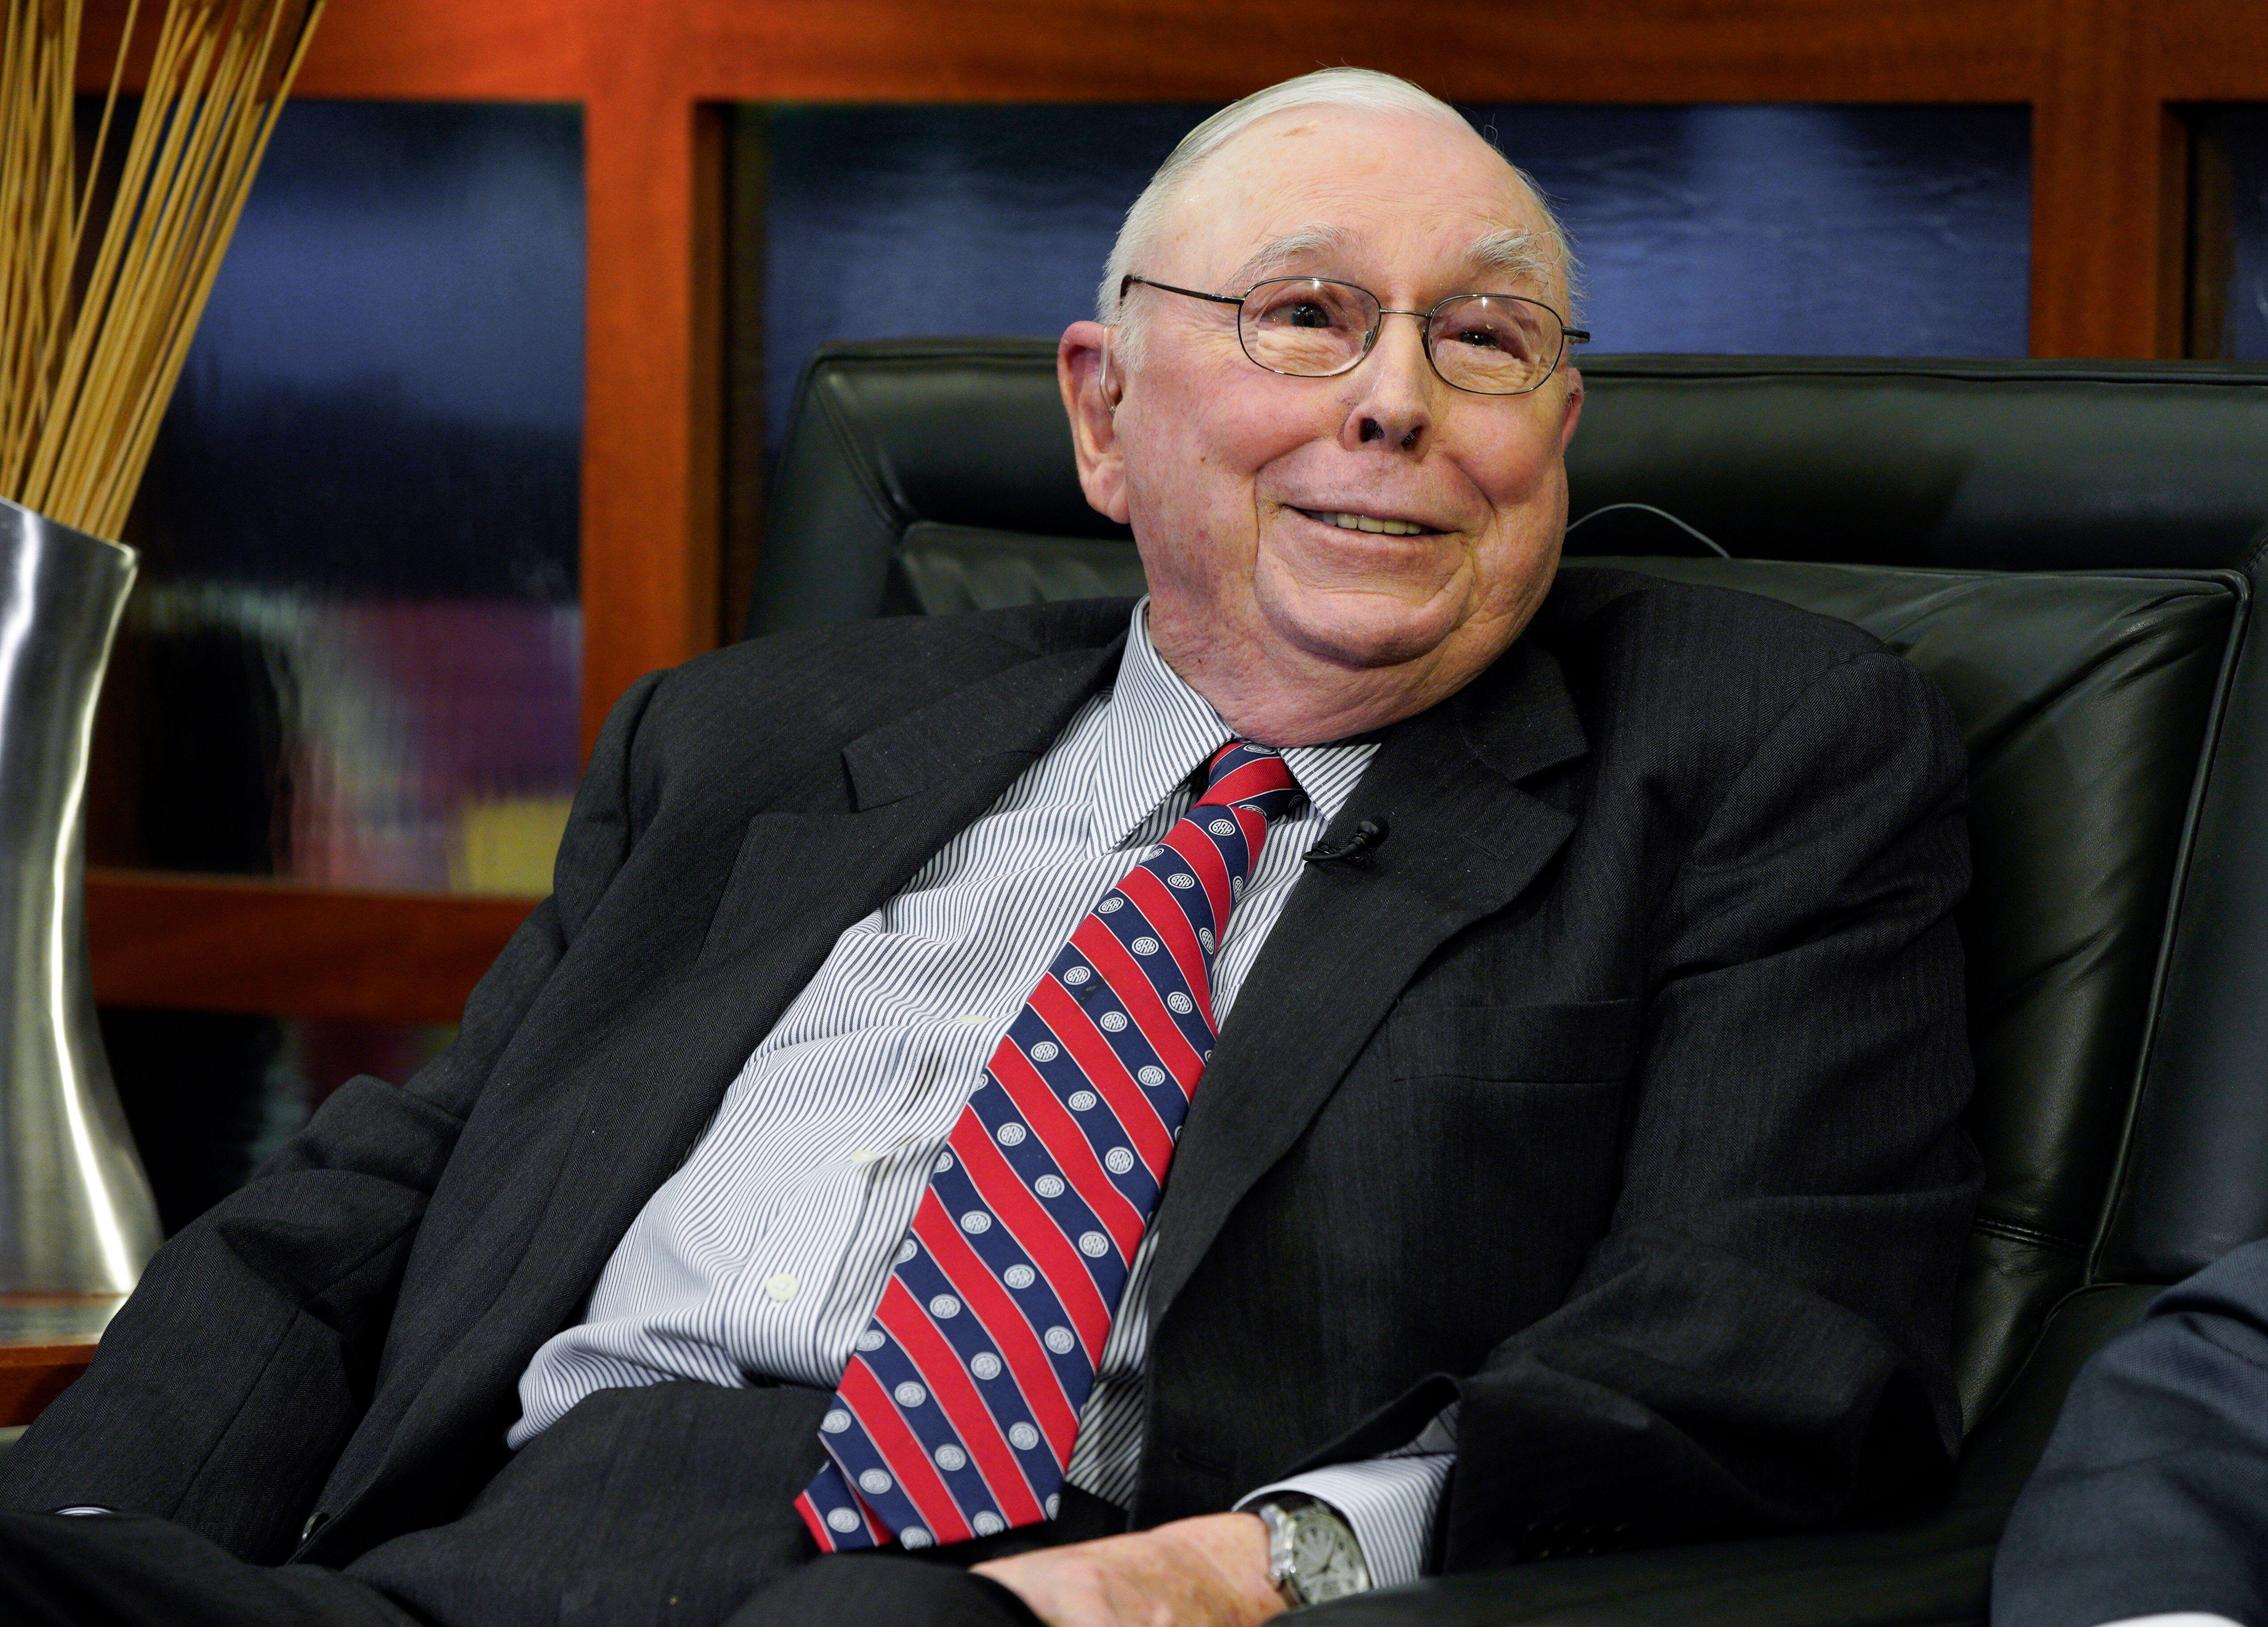 Charlie Munger: America's health care system is a 'national disgrace'